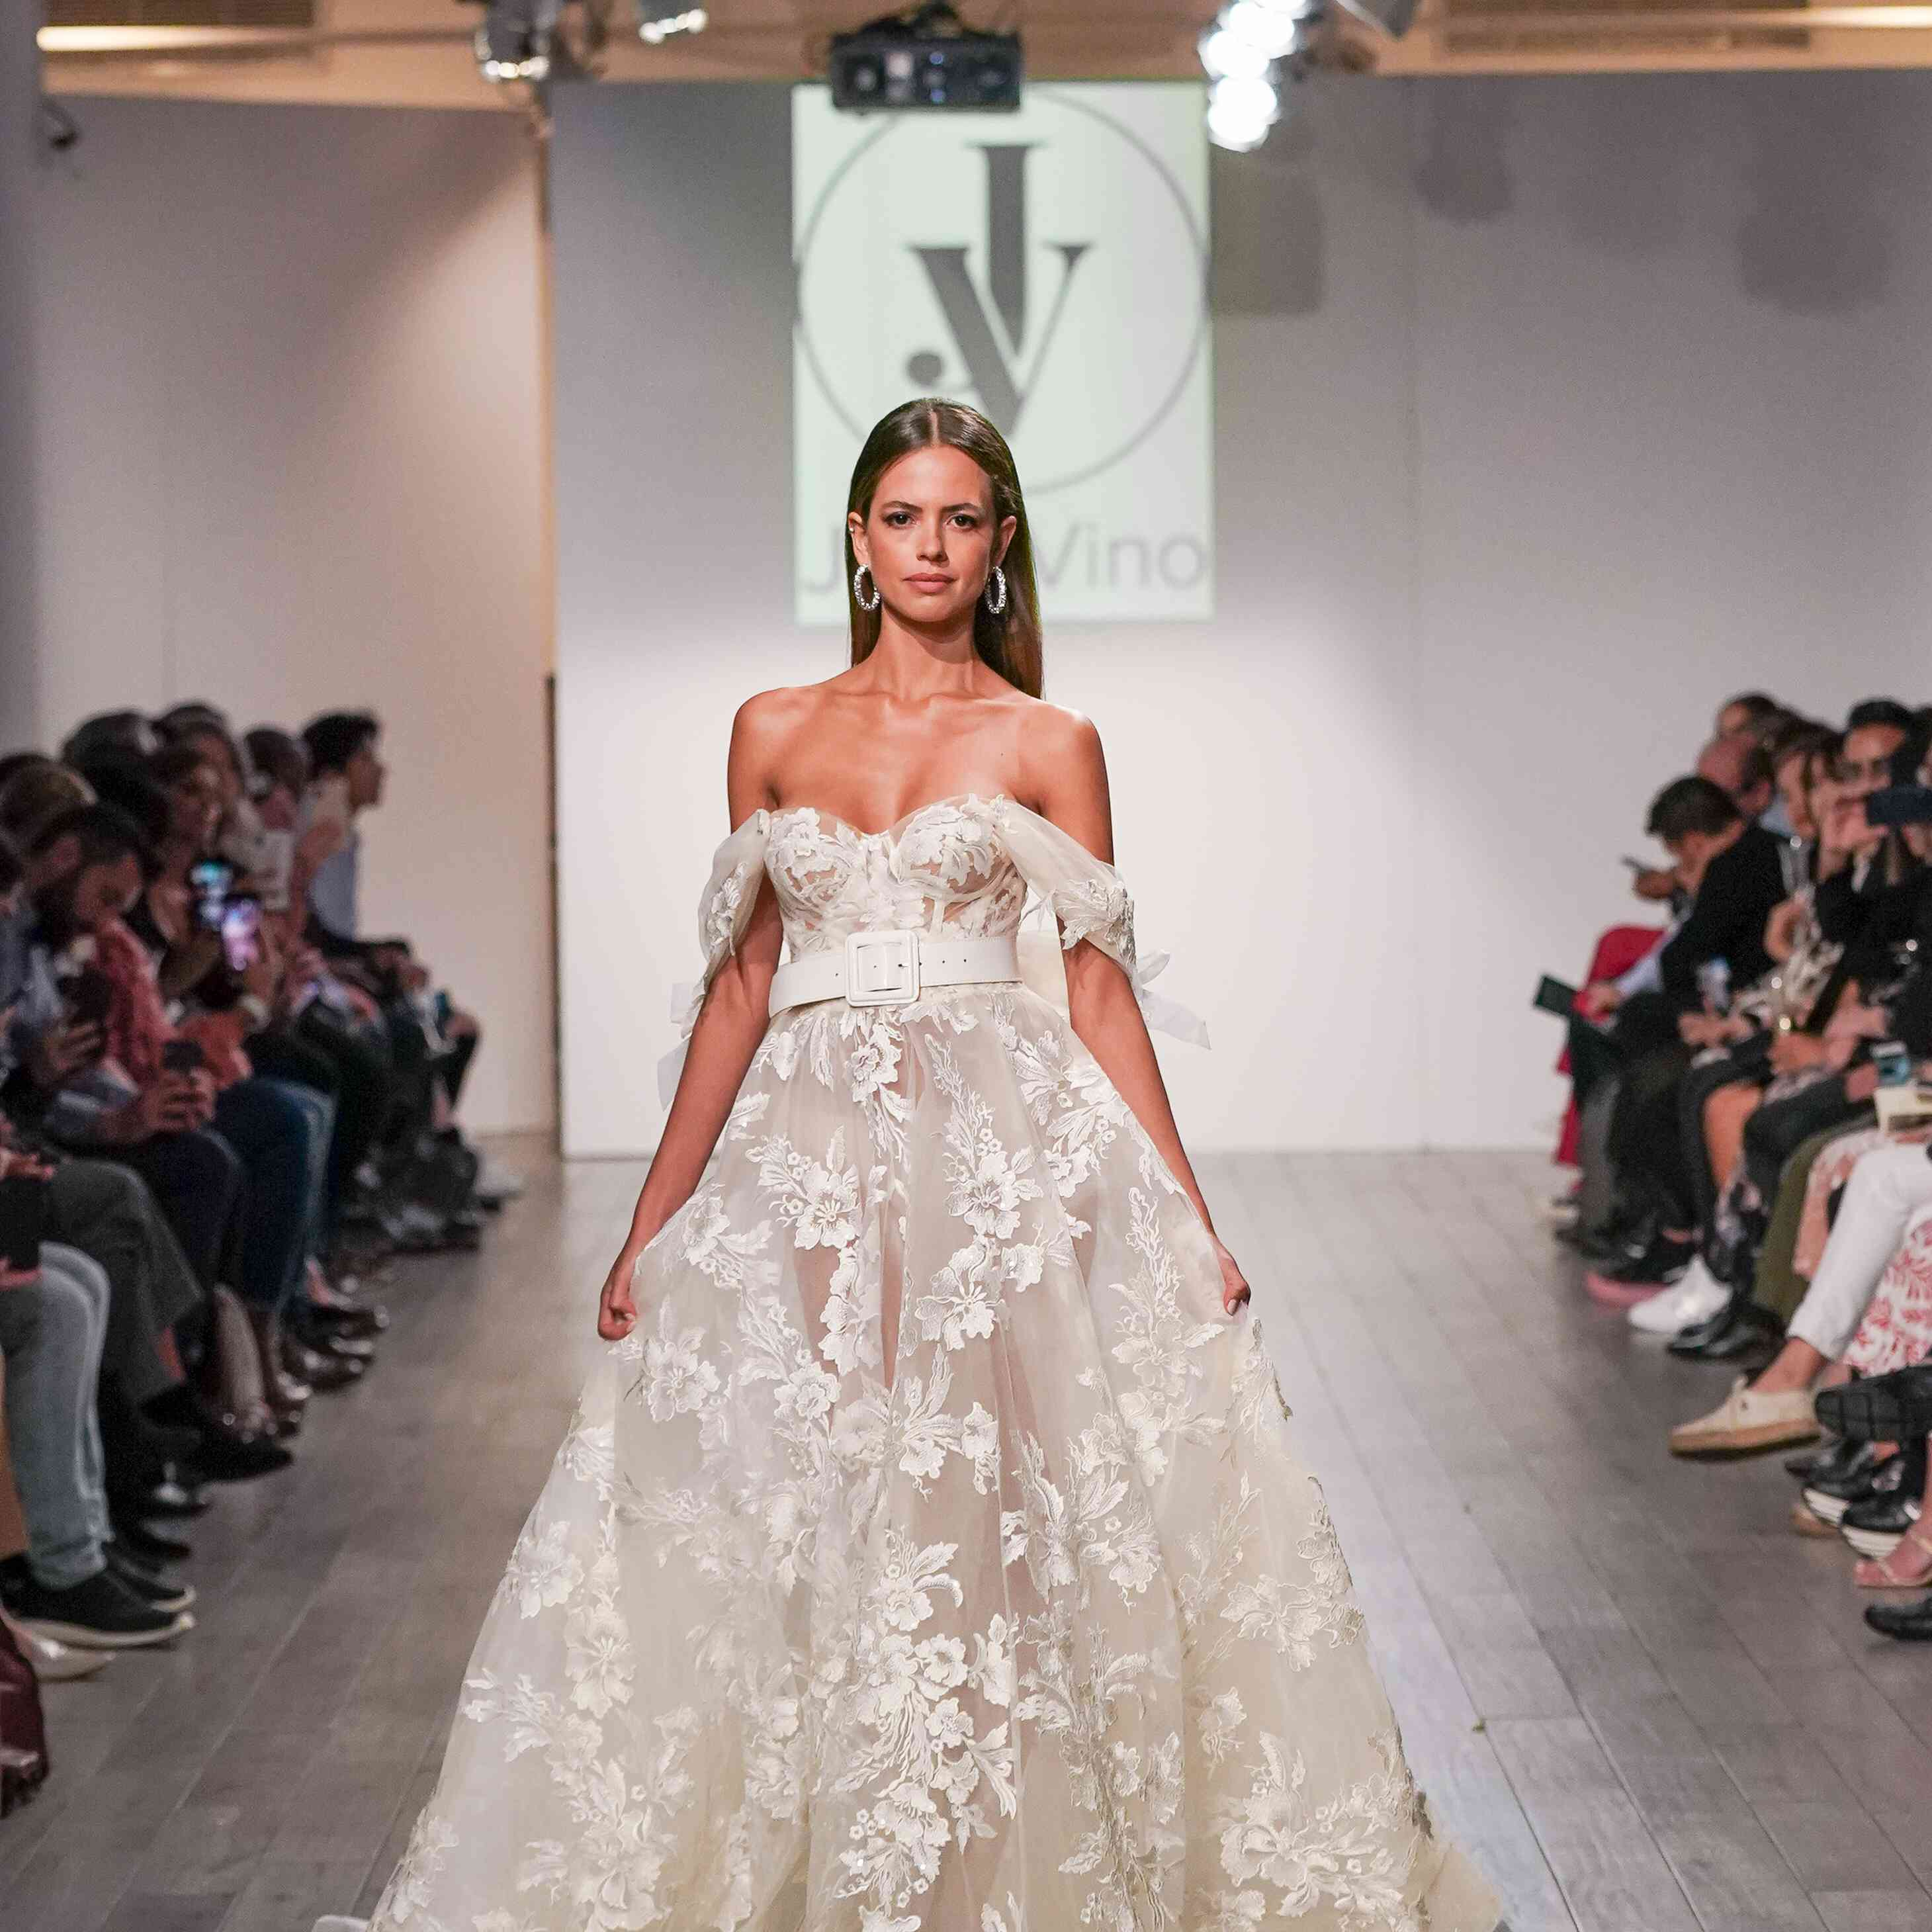 These Are The Wedding Dress Trends Our Editors Love For Fall 2020